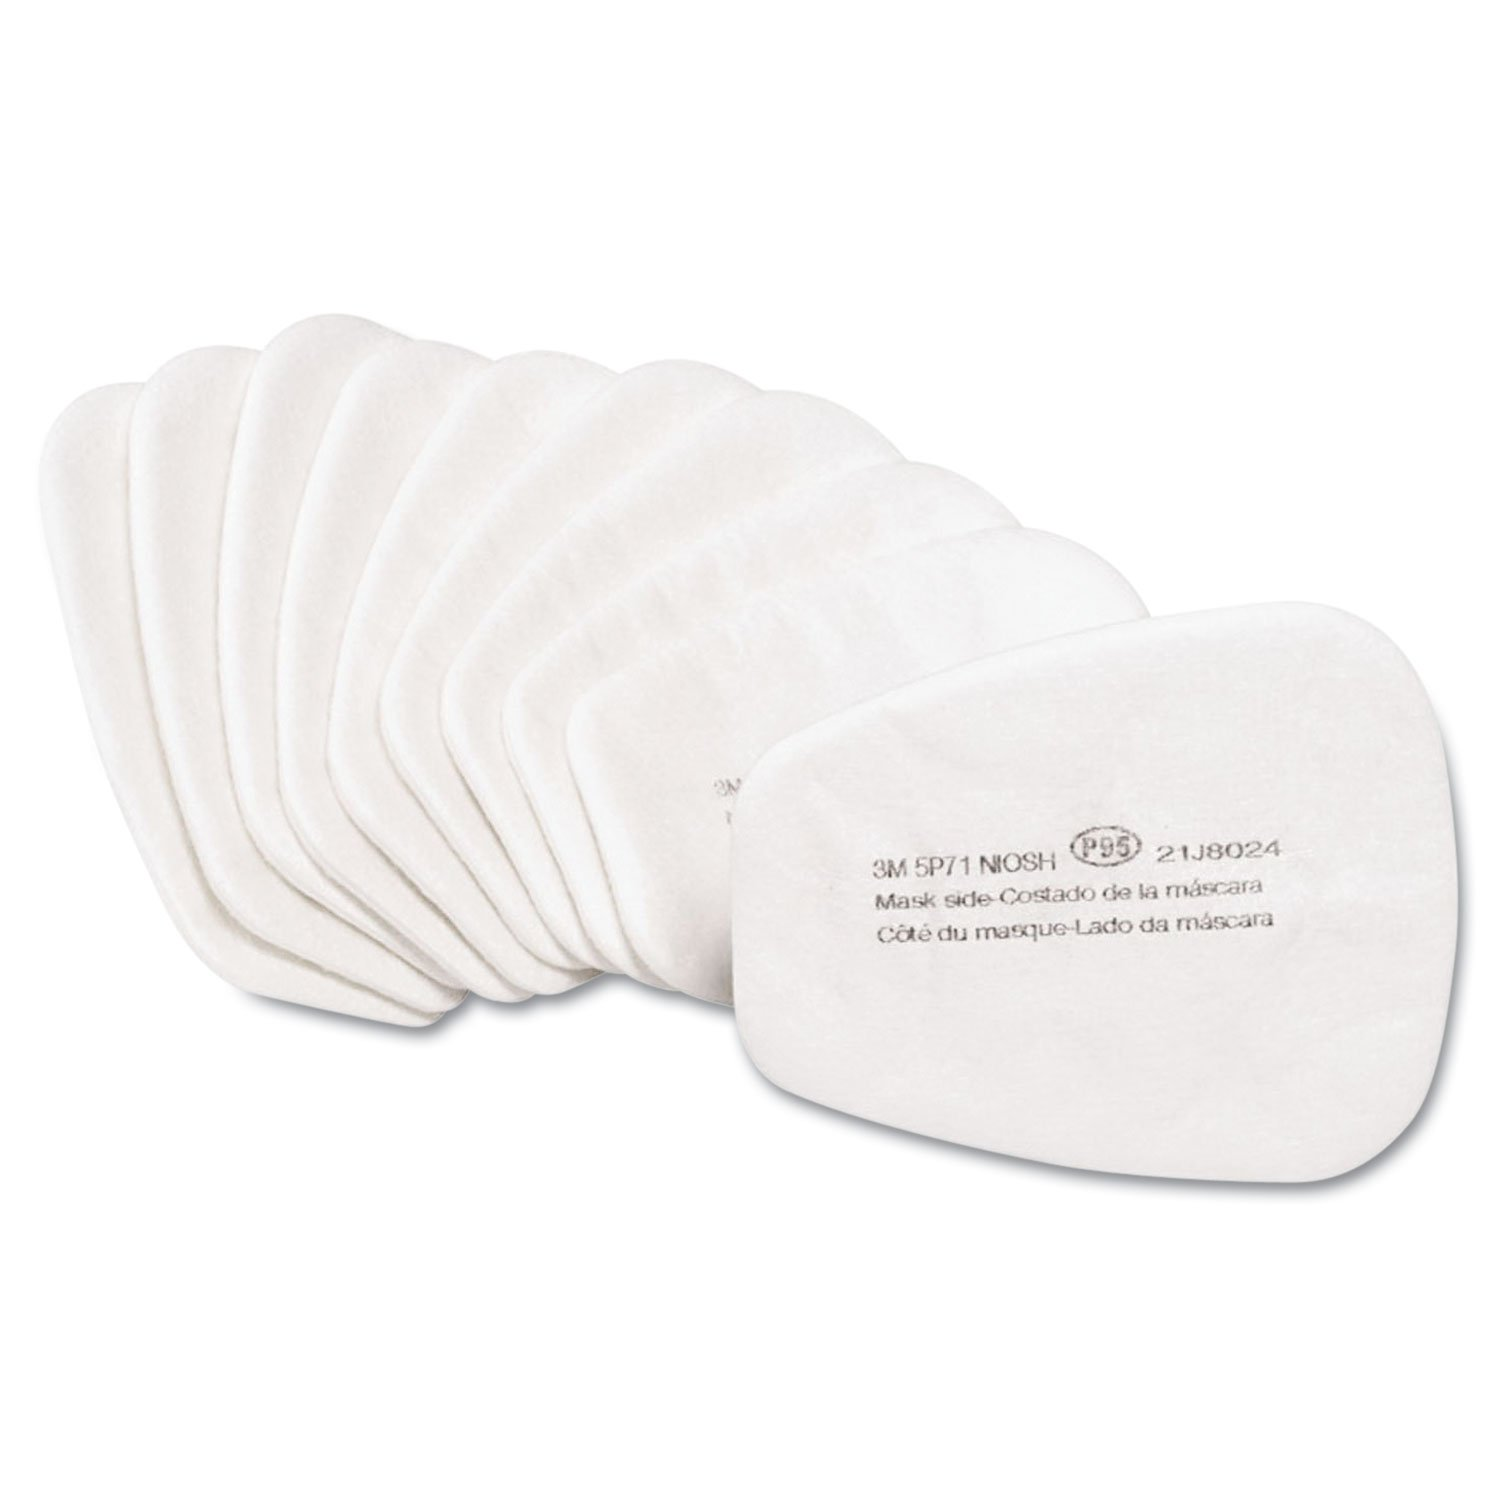 3M 5p71 P95 Particulate Filter, Use with 501 Filter Retainer, Box/10